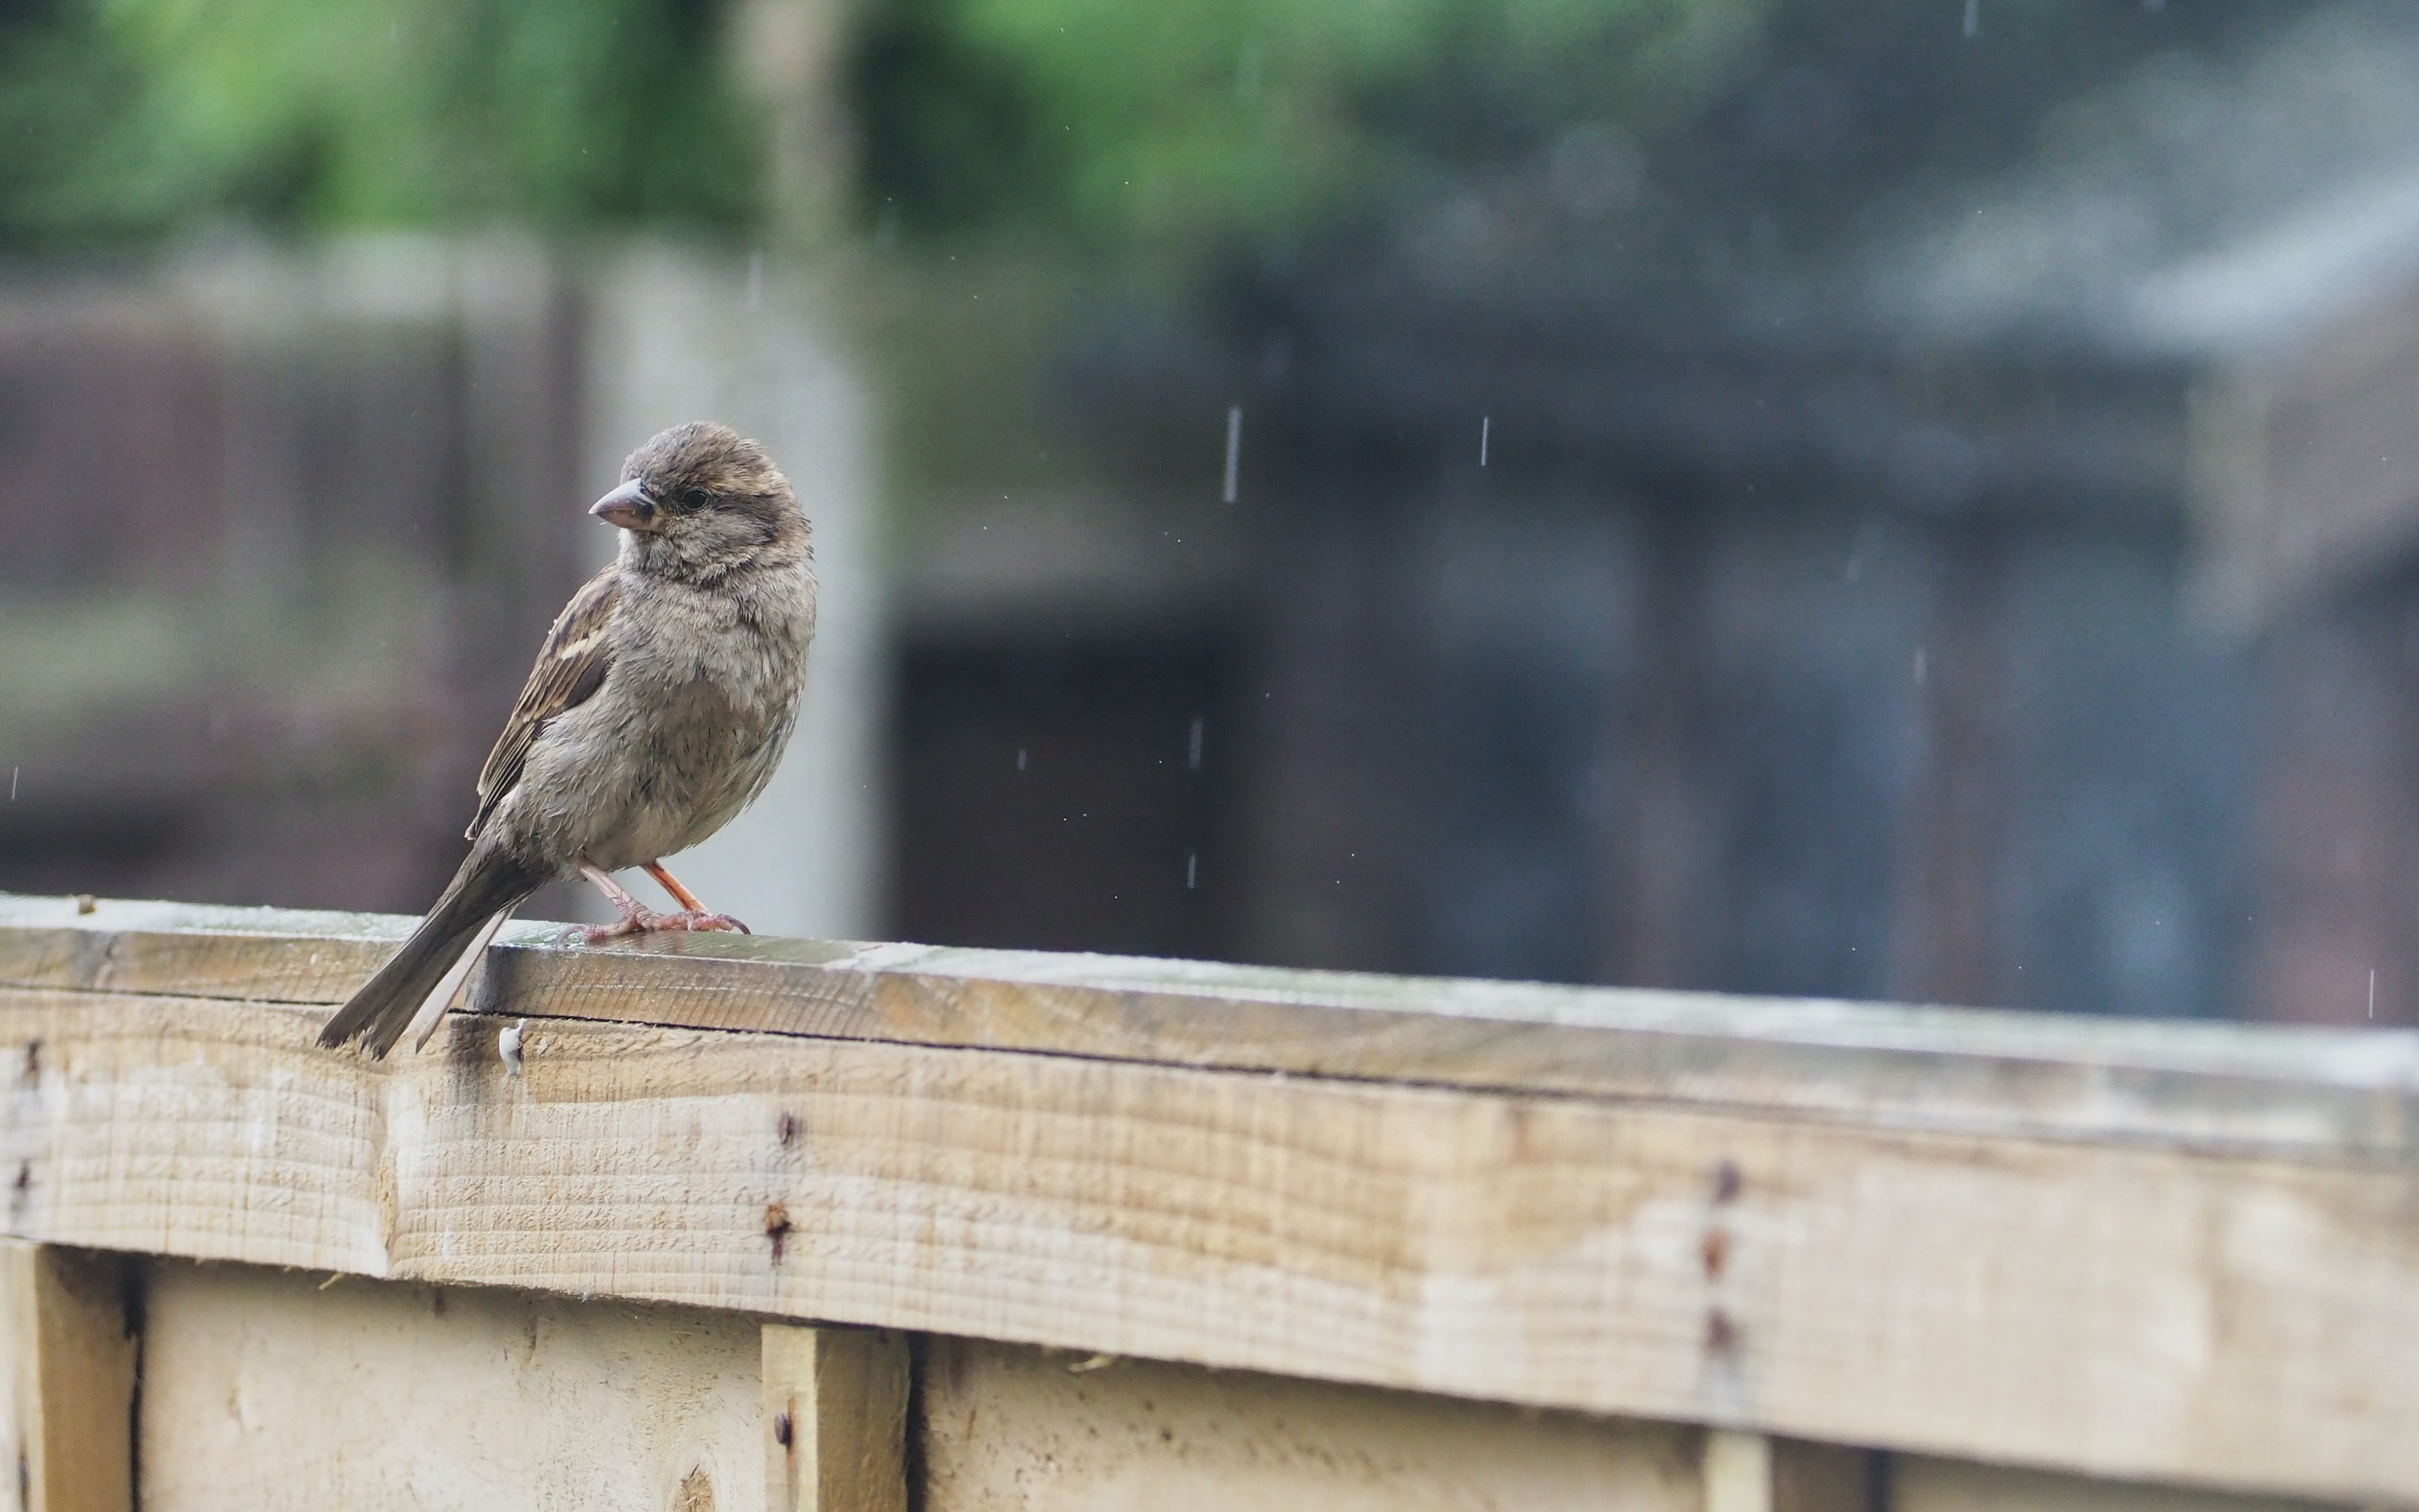 House Sparrow sitting on a garden fench in the rain